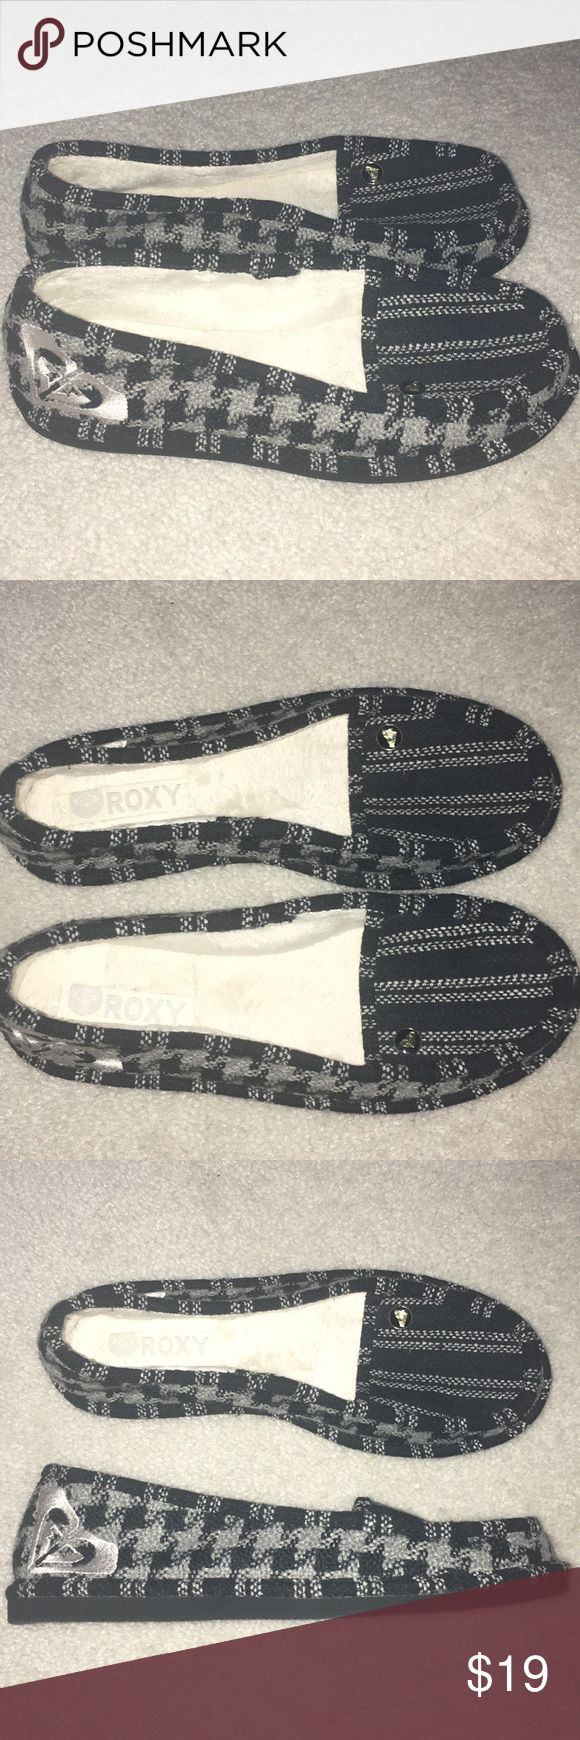 Roxy brand slipper/loafer. Size 8. Never worn. Roxy brand loafer/slipper. Black and grey stripes on top. Houndstooth/checker design on side. Soft fur lining on inside. Roxy symbol on ankle of each shoe. Never worn. Without original box. Roxy Shoes Flats & Loafers